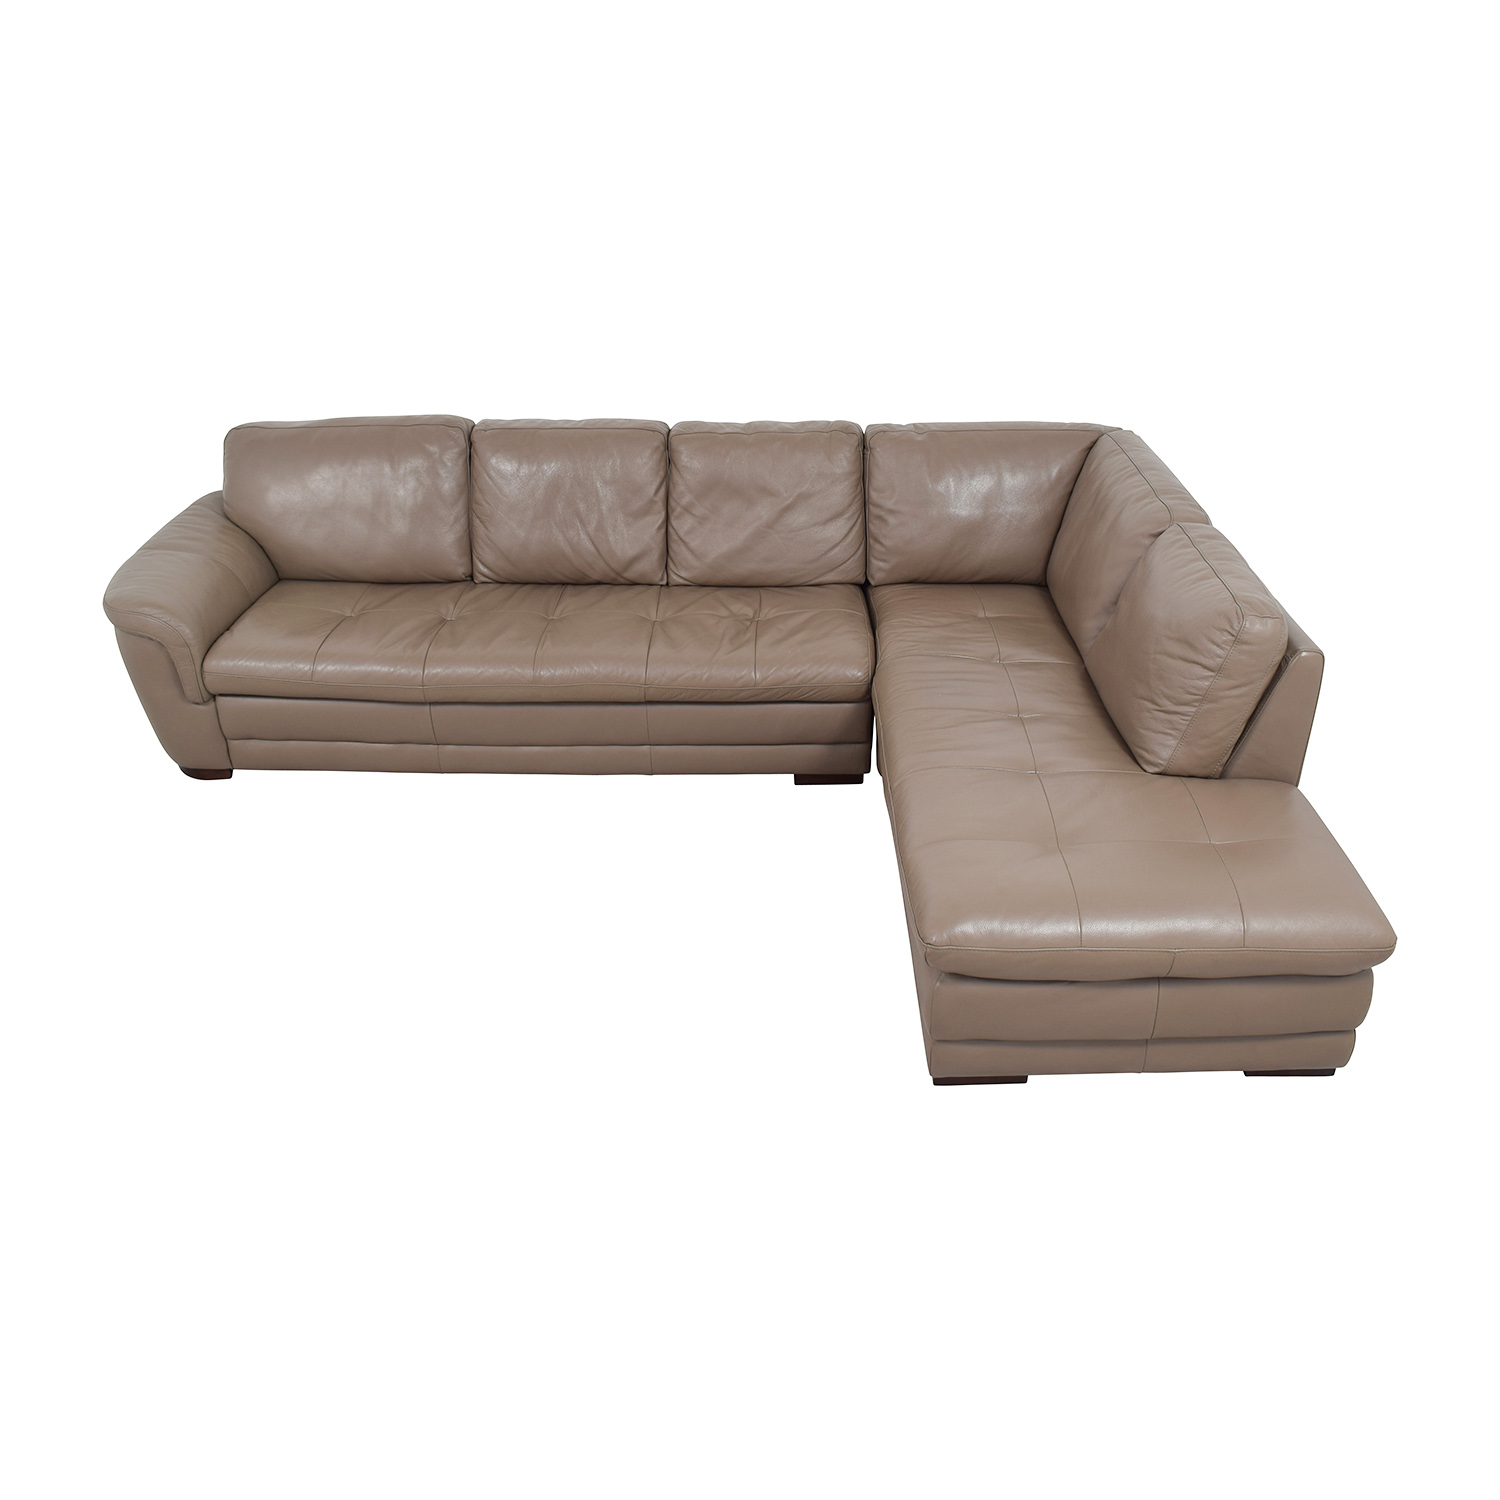 Used tufted sofa 47 off macy s lizbeth gray on tufted sofa for Leather sectional sofa nj